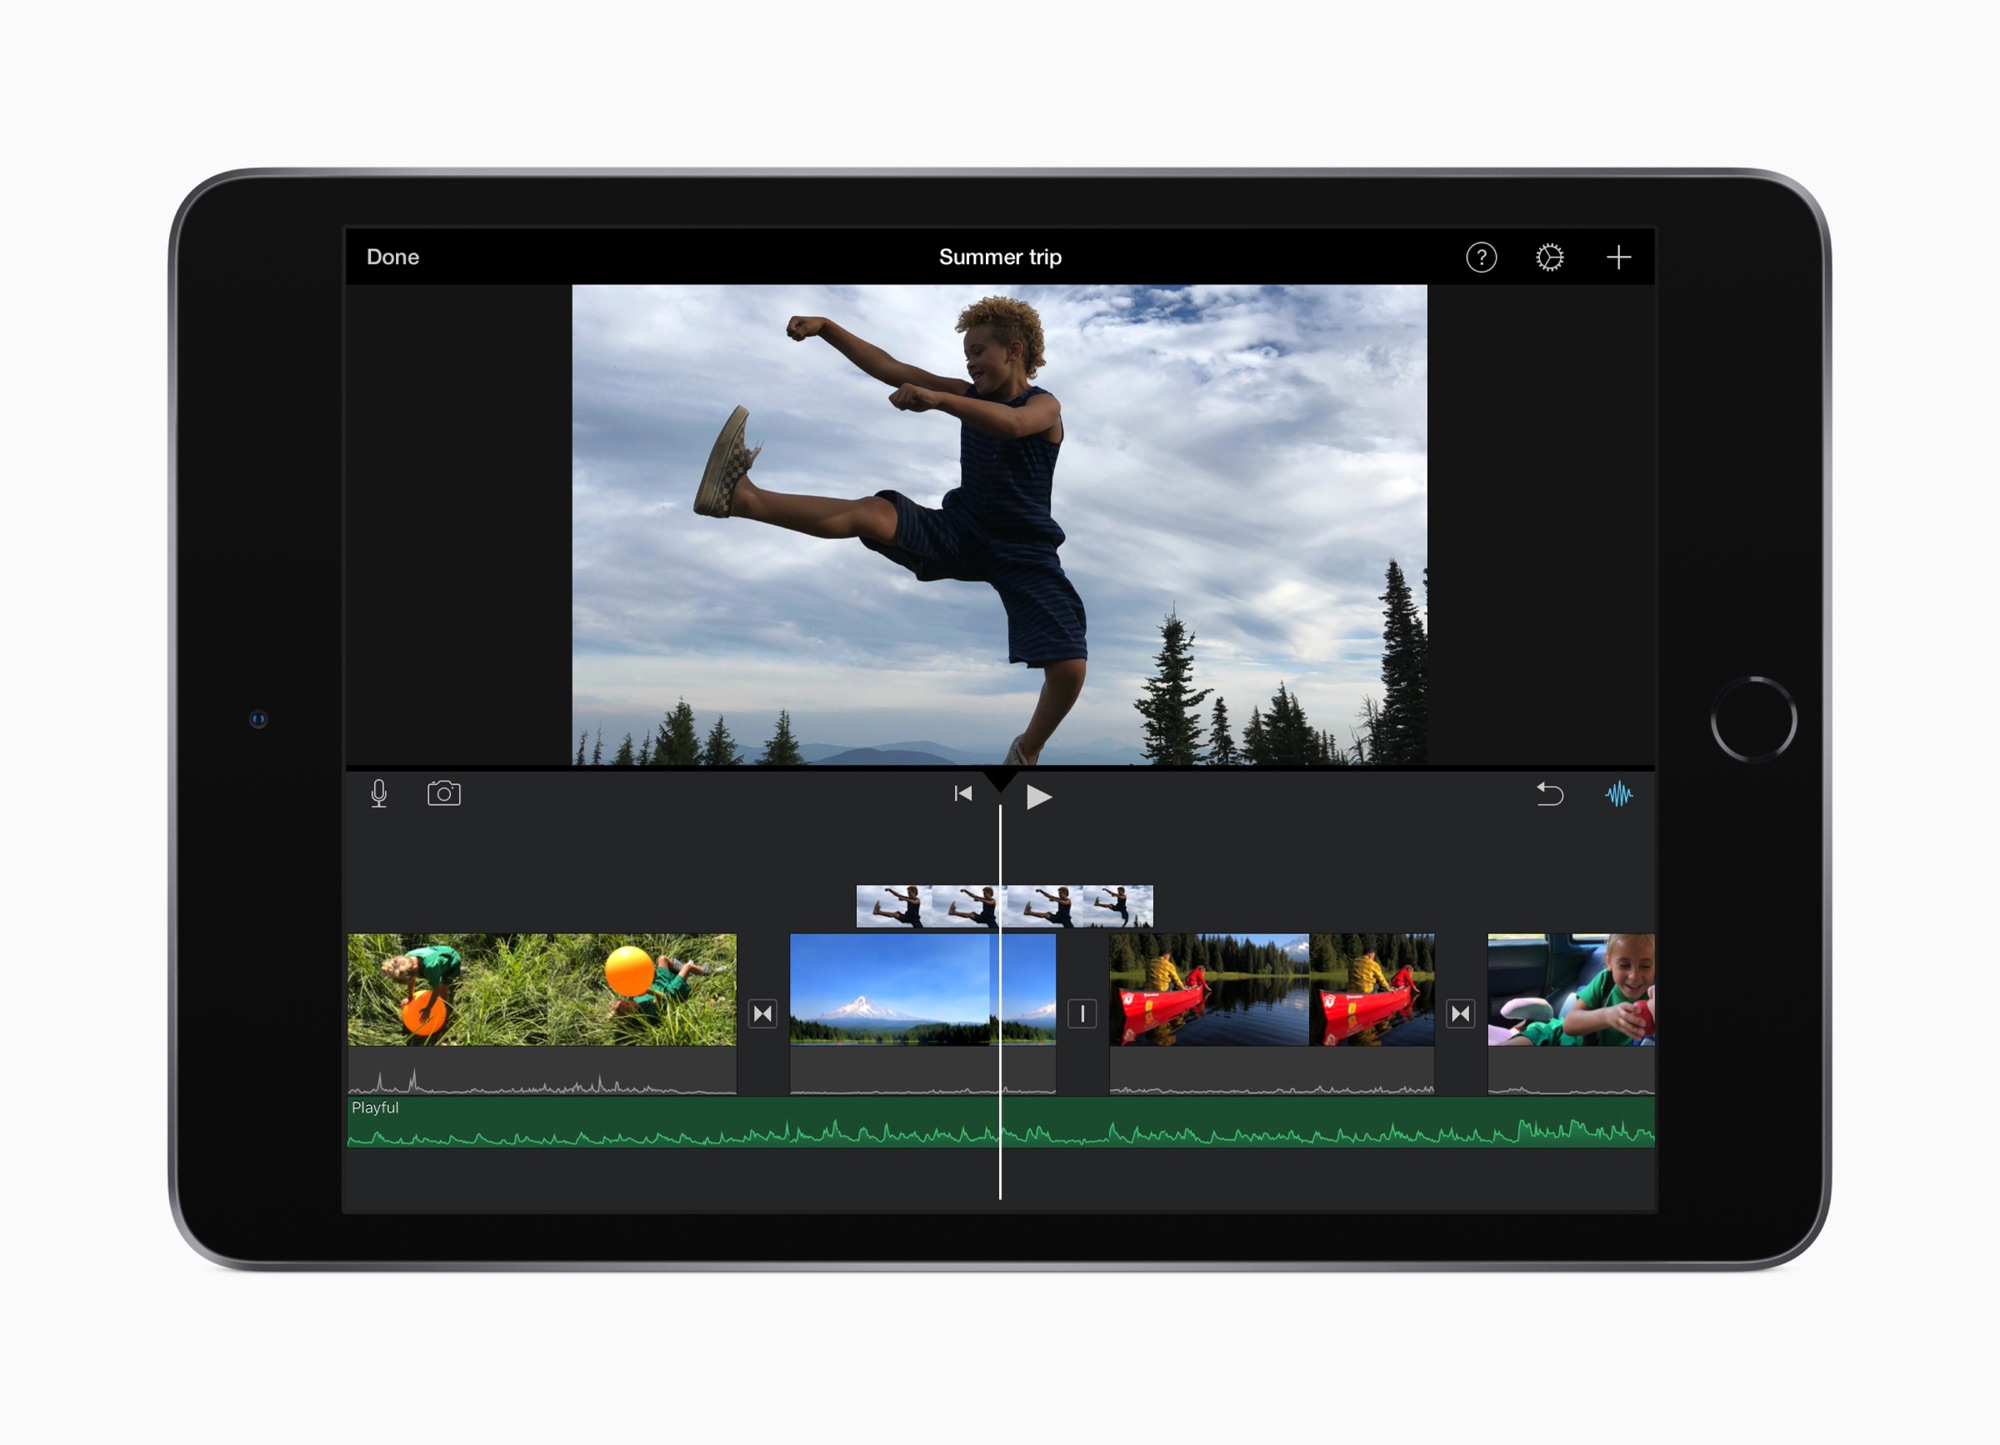 iPad mini 2019 met iMovie.